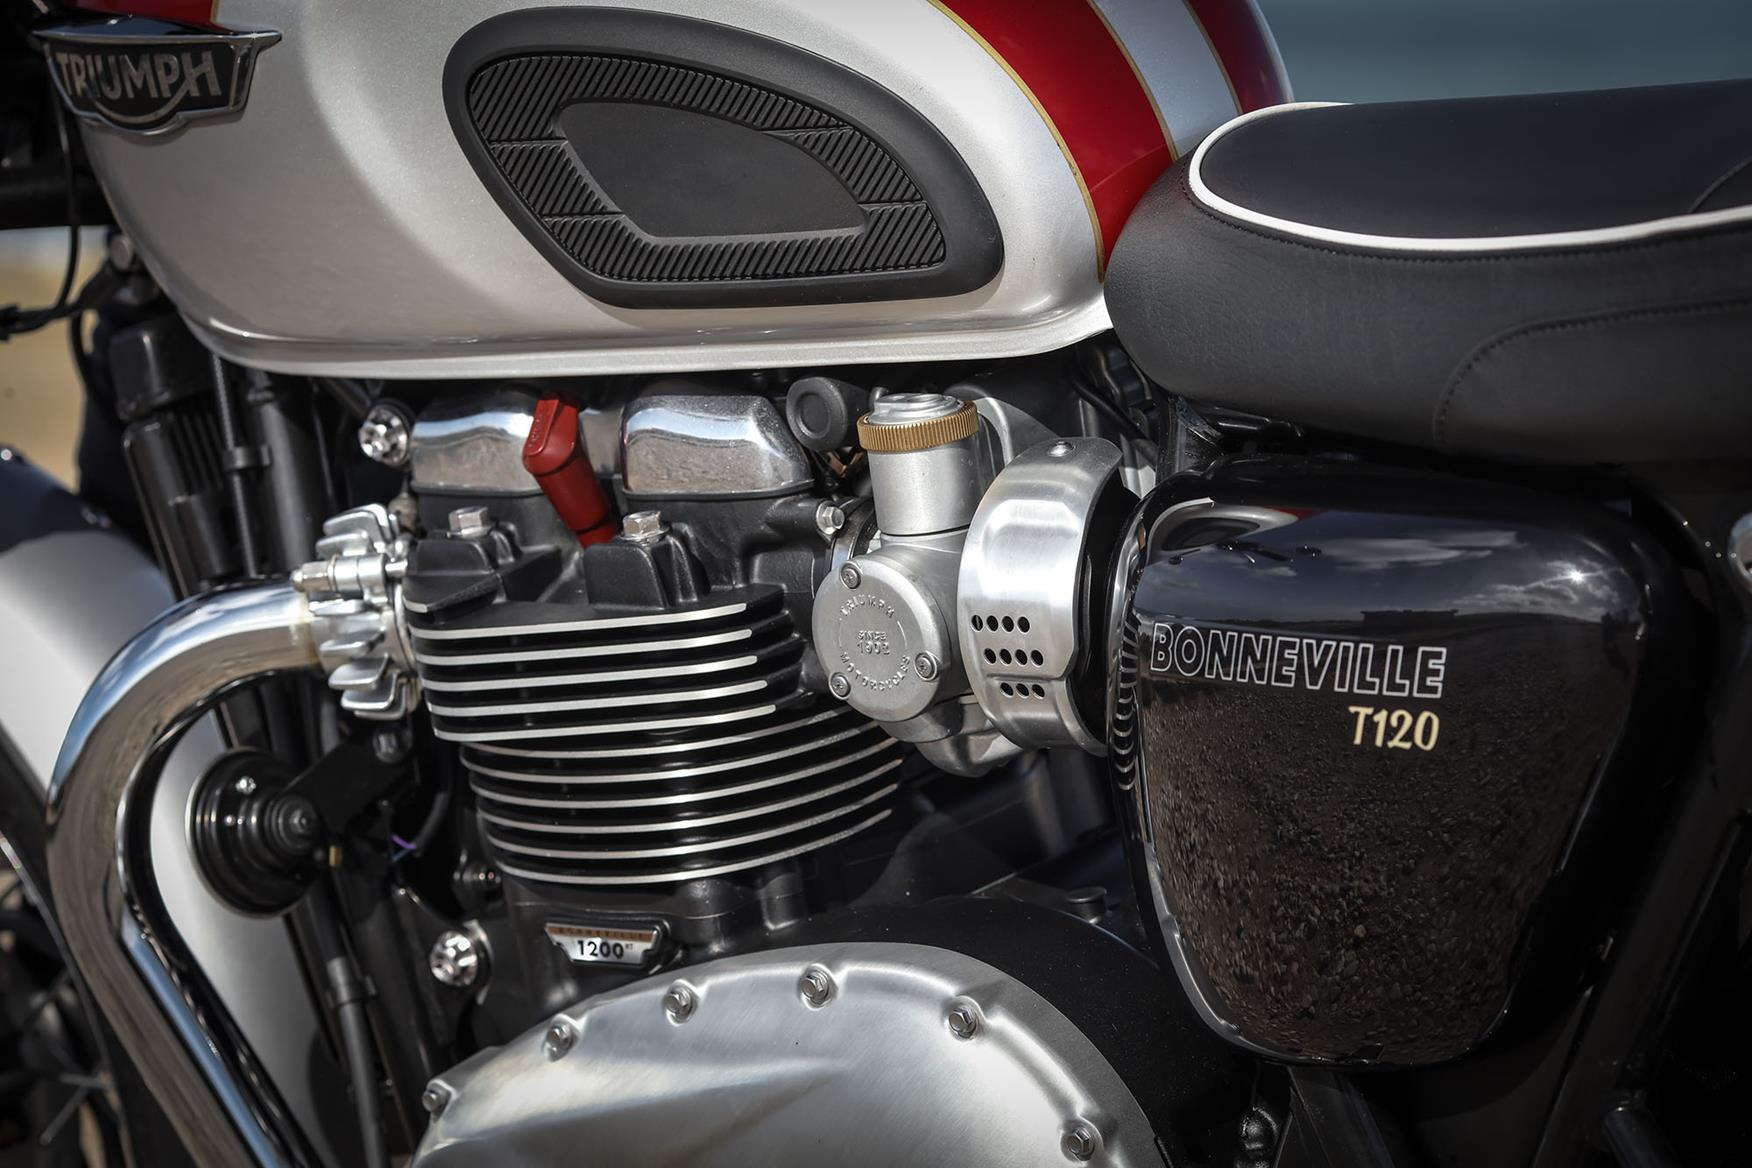 Triumph Bonneville T120 engine